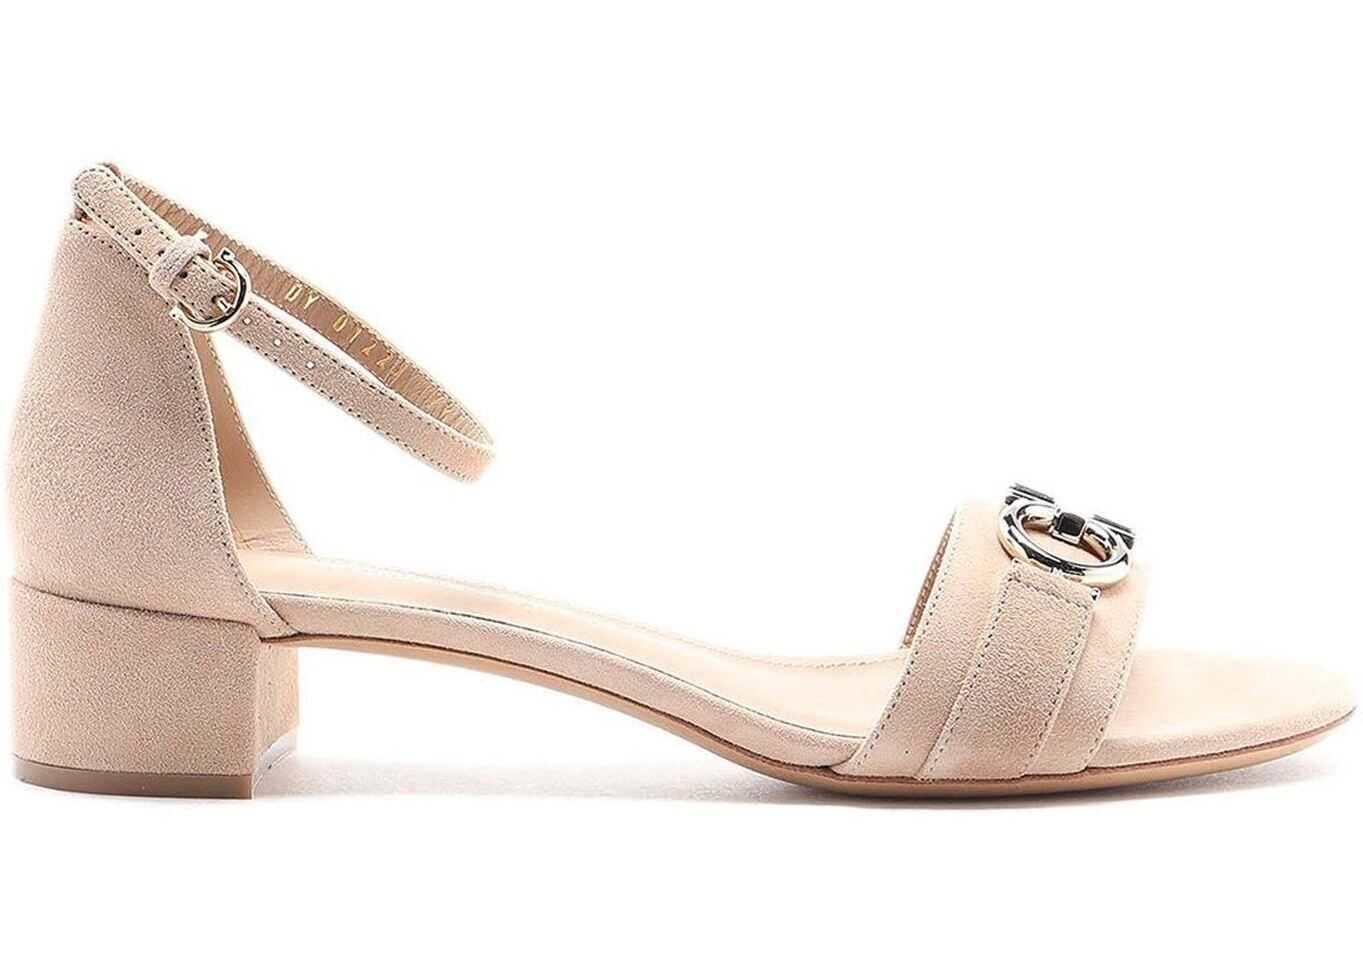 Salvatore Ferragamo Como 30 Gancini Detailed Sandals Pink